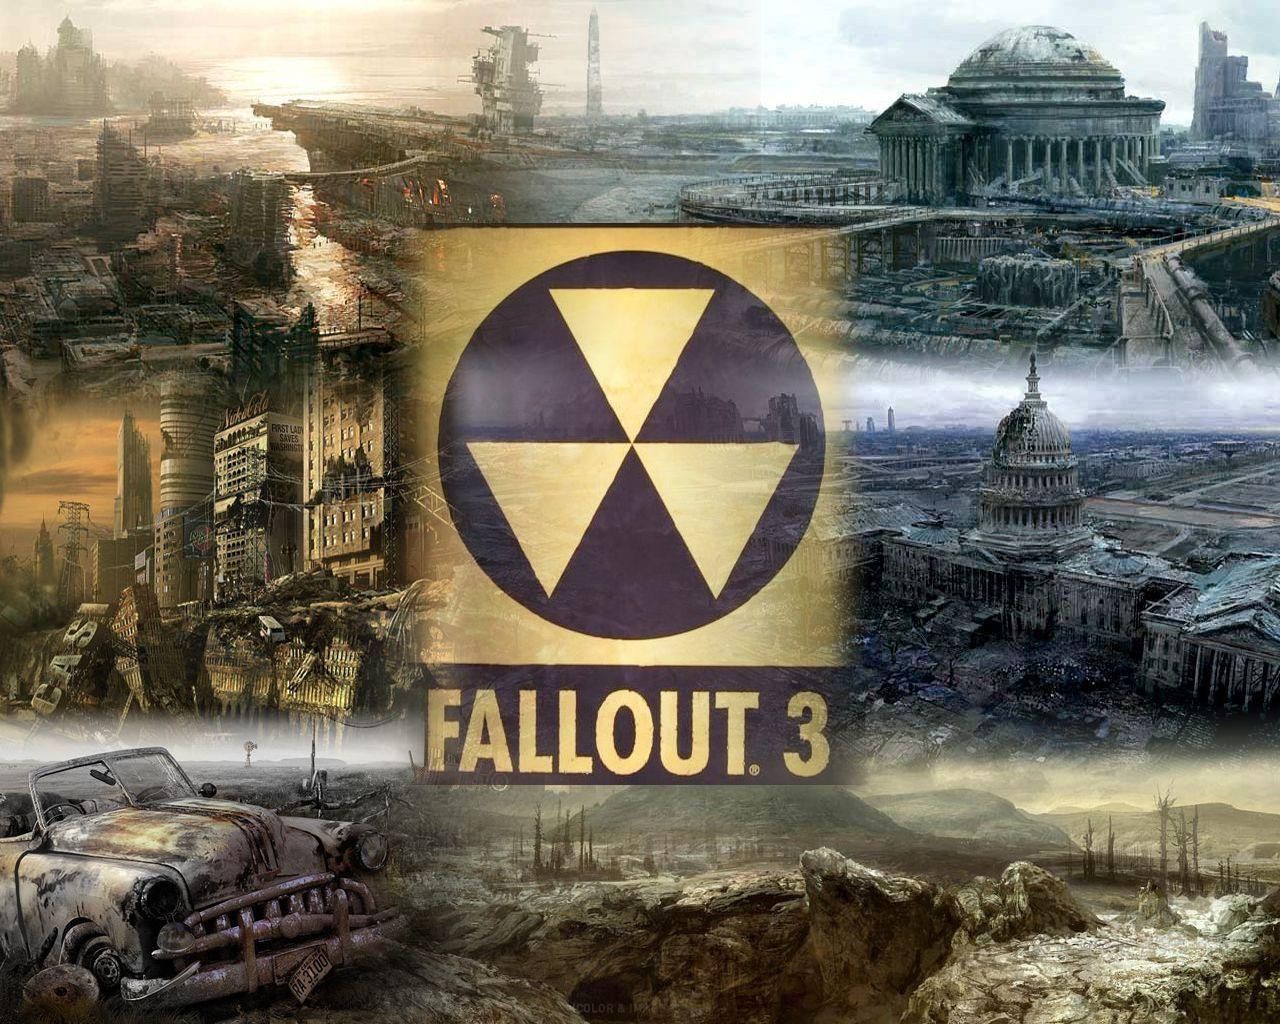 Fallout 3 Backgrounds - Wallpaper Cave